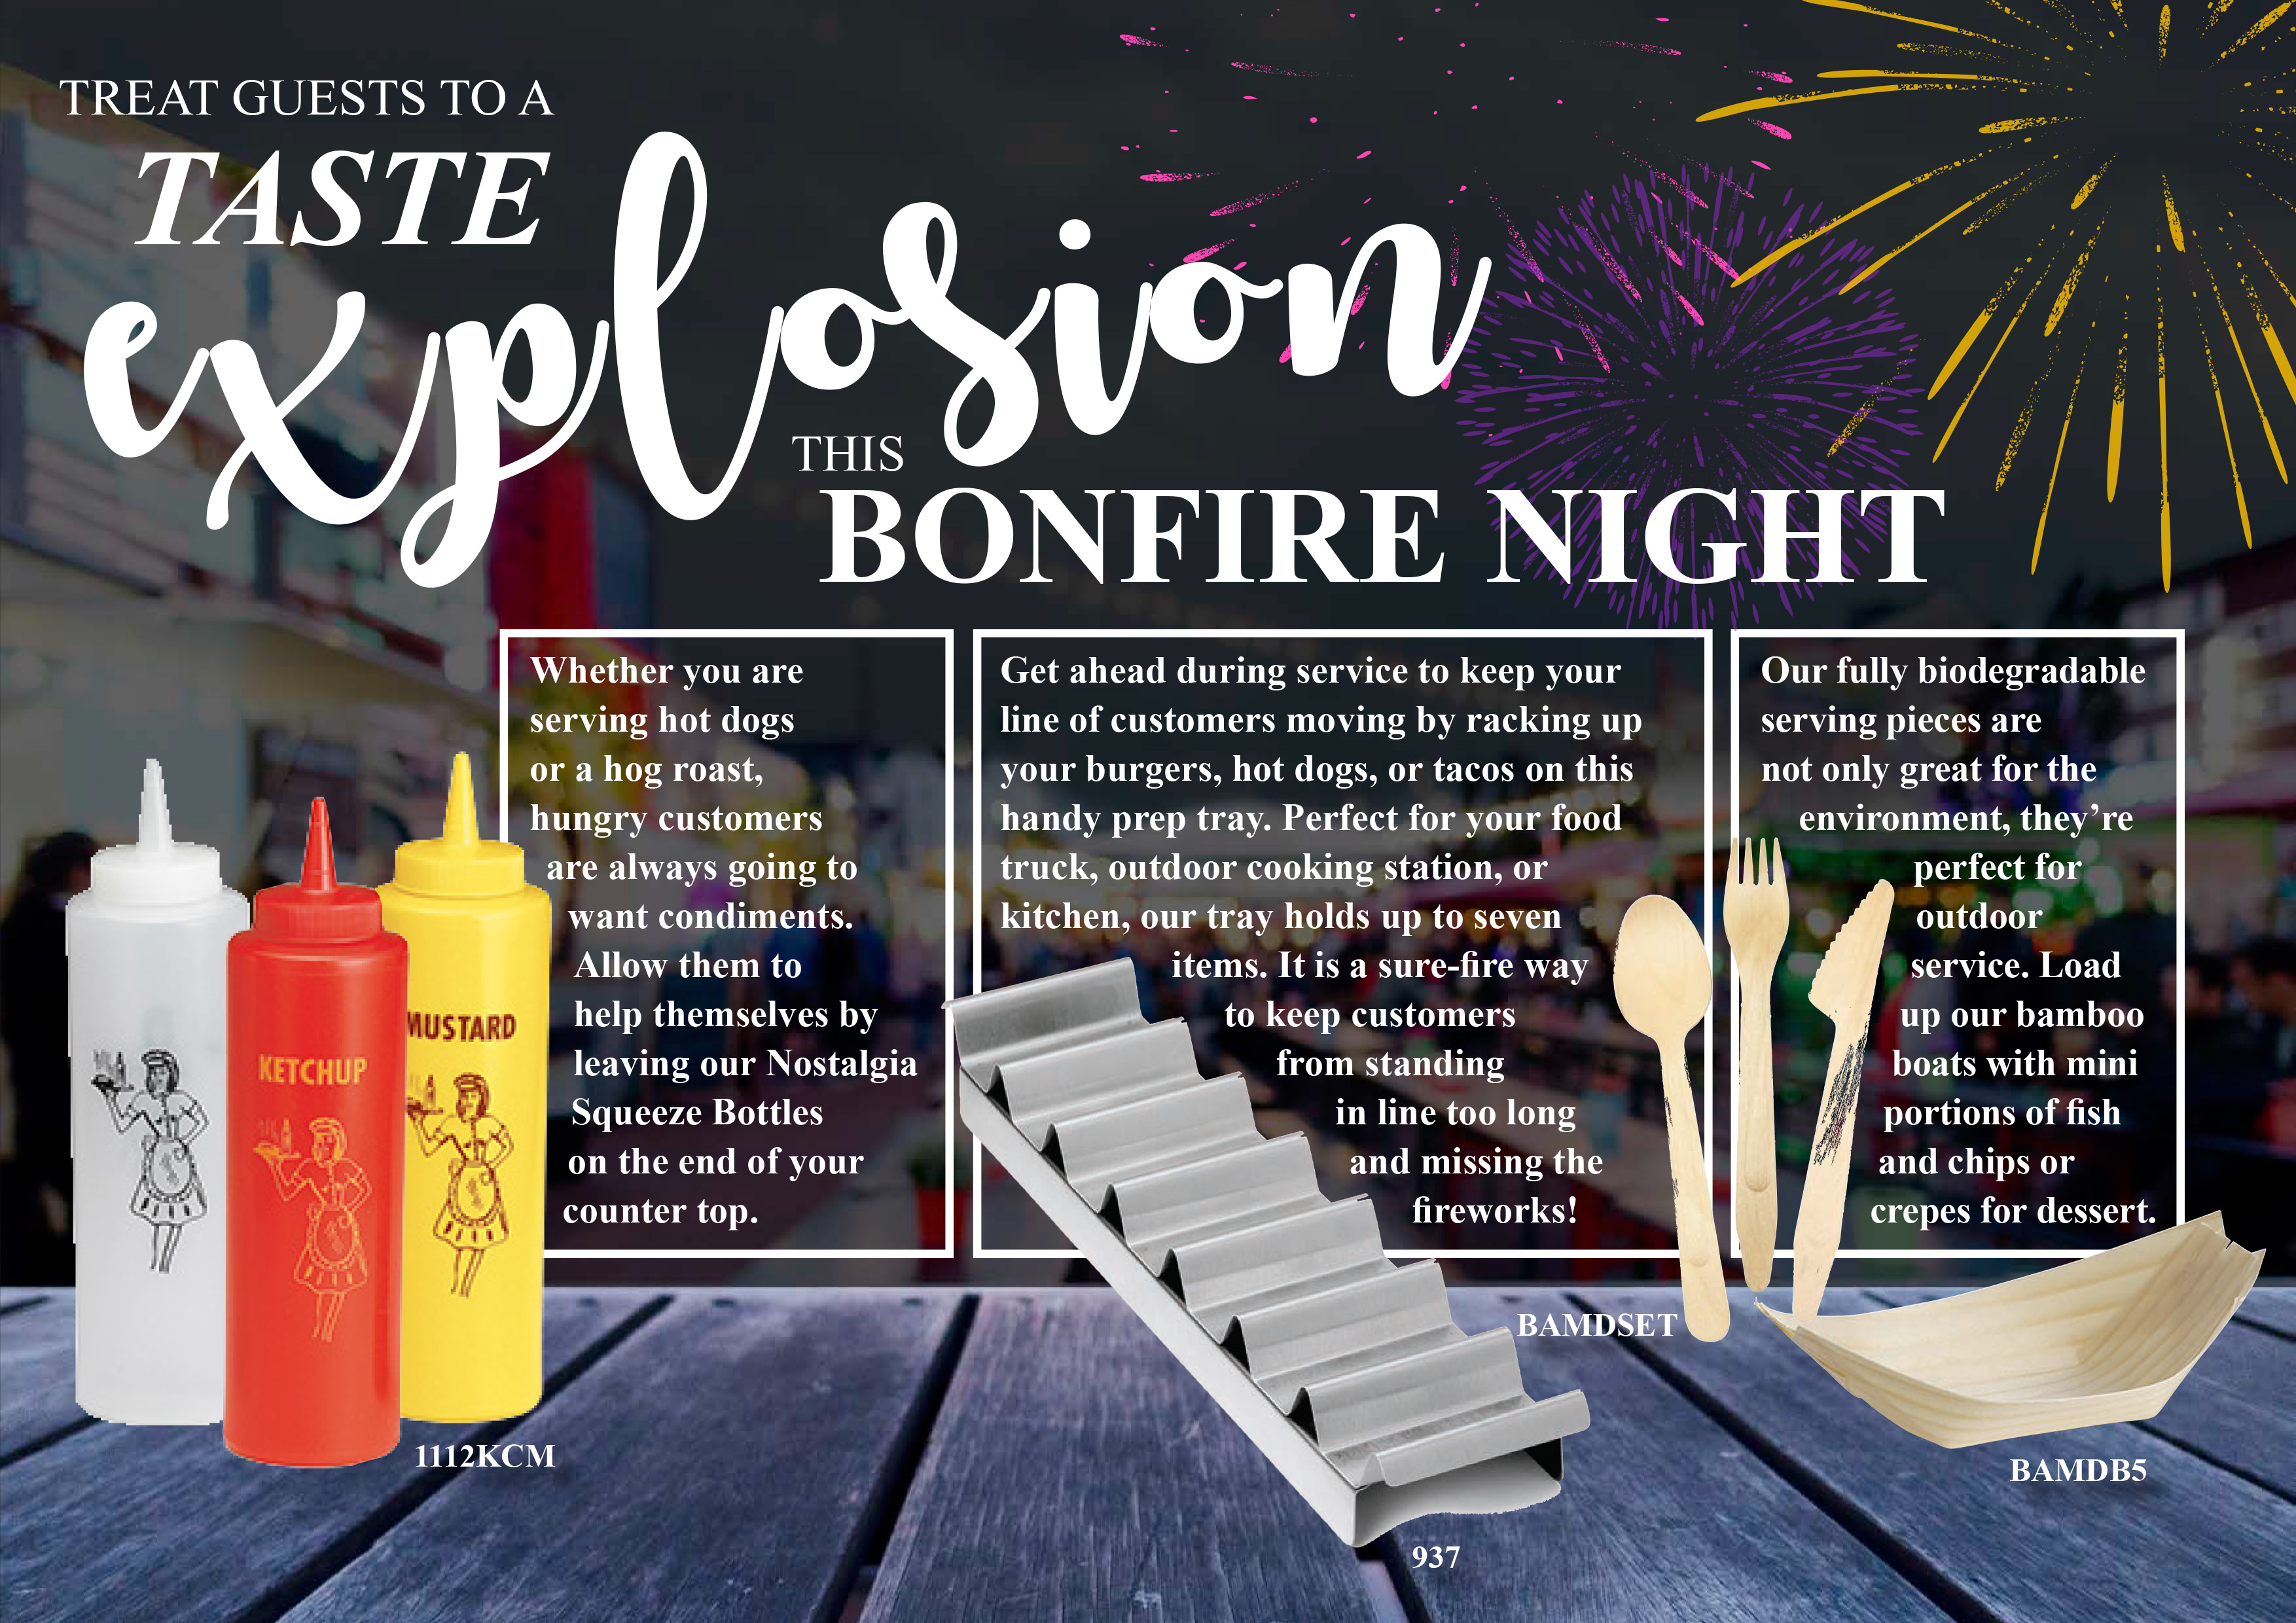 treat guests to a tast explosion this bonfire night